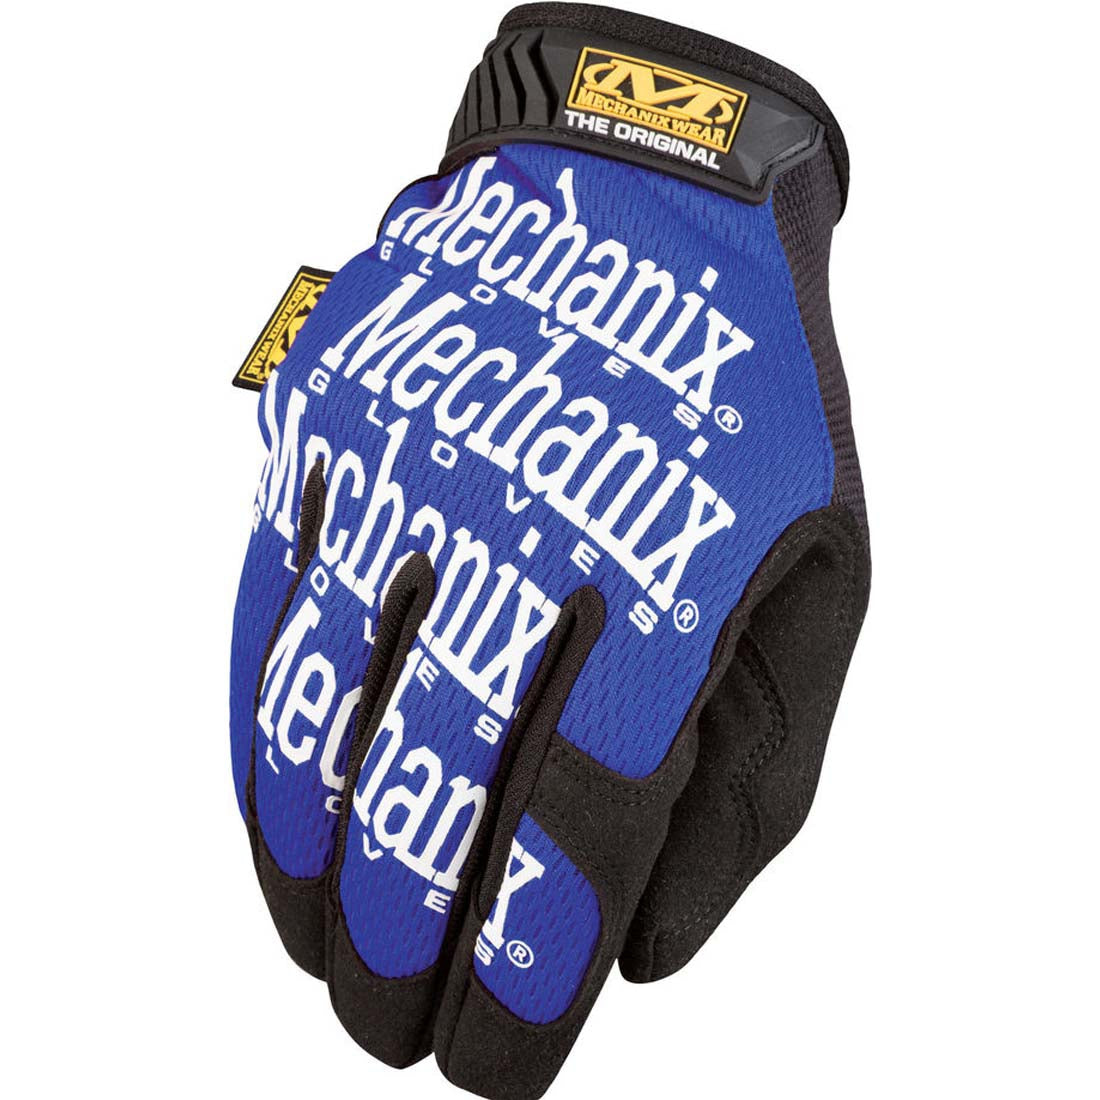 Mechanix Wear MG-03-008 Blue The Original Work Gloves - Small